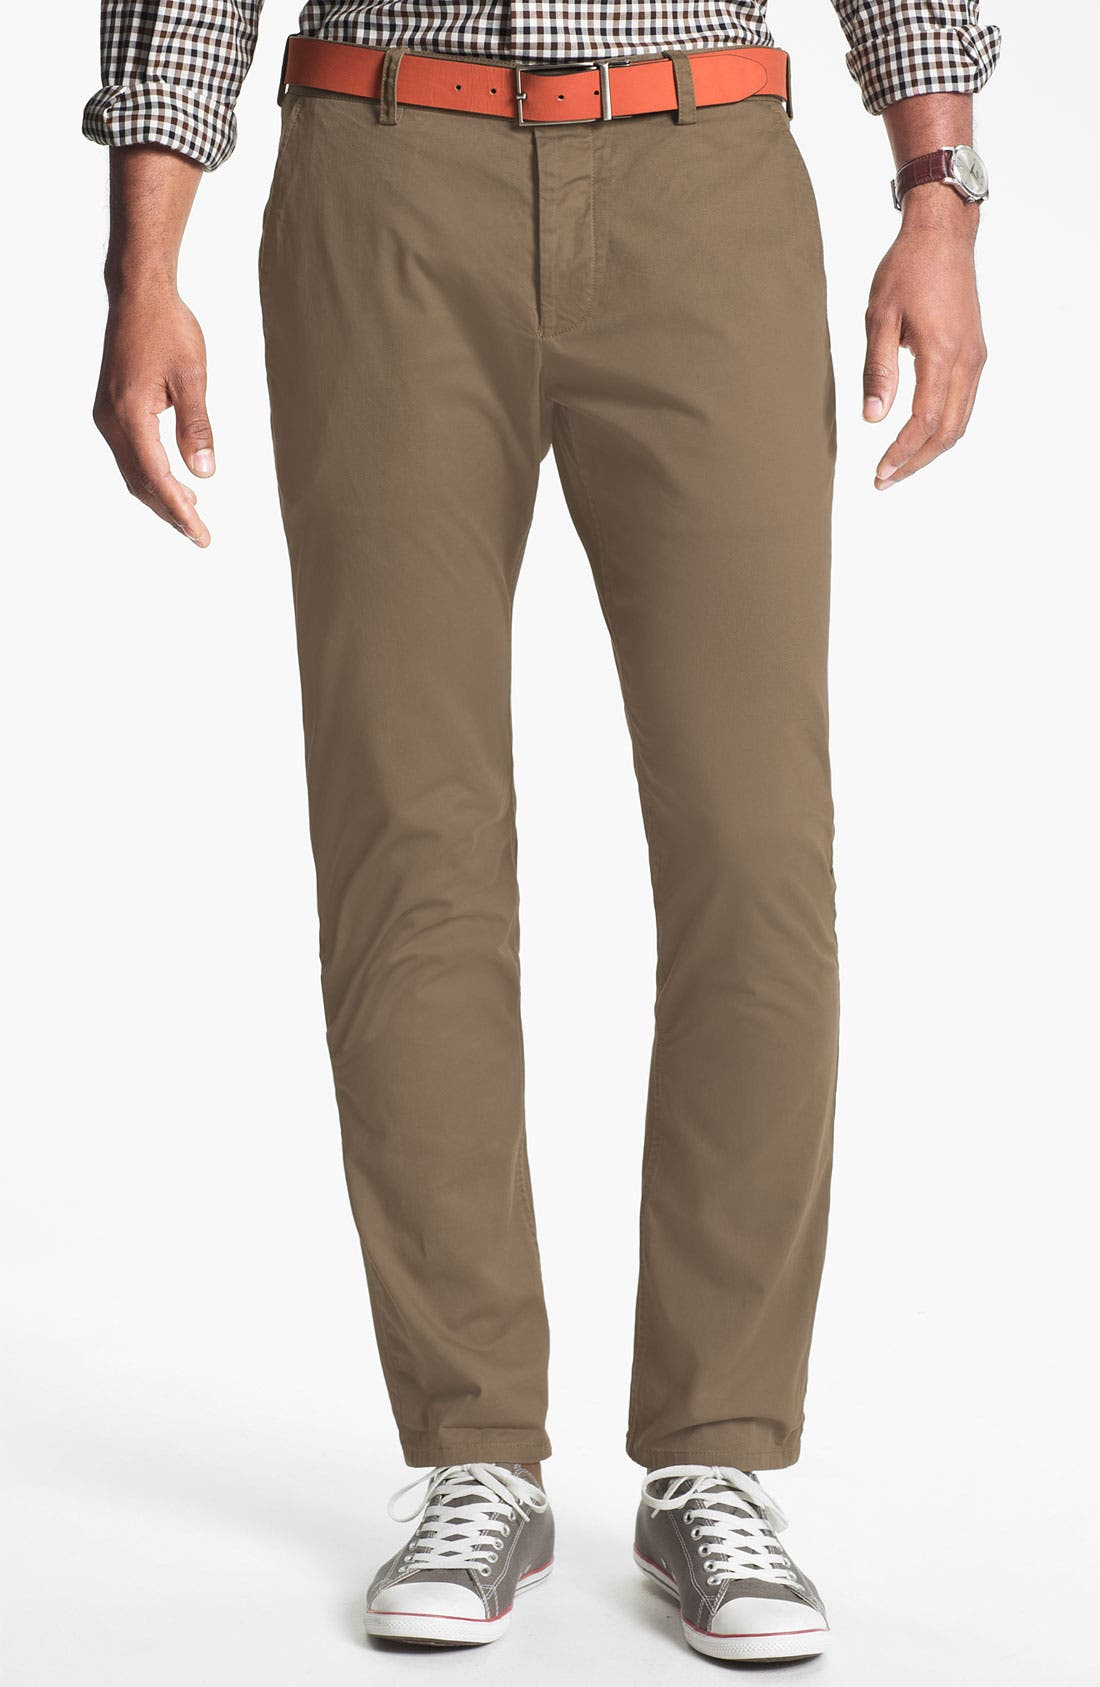 Alternate Image 1 Selected - French Connection 'Machine Gun' Flat Front Pants (Online Only)